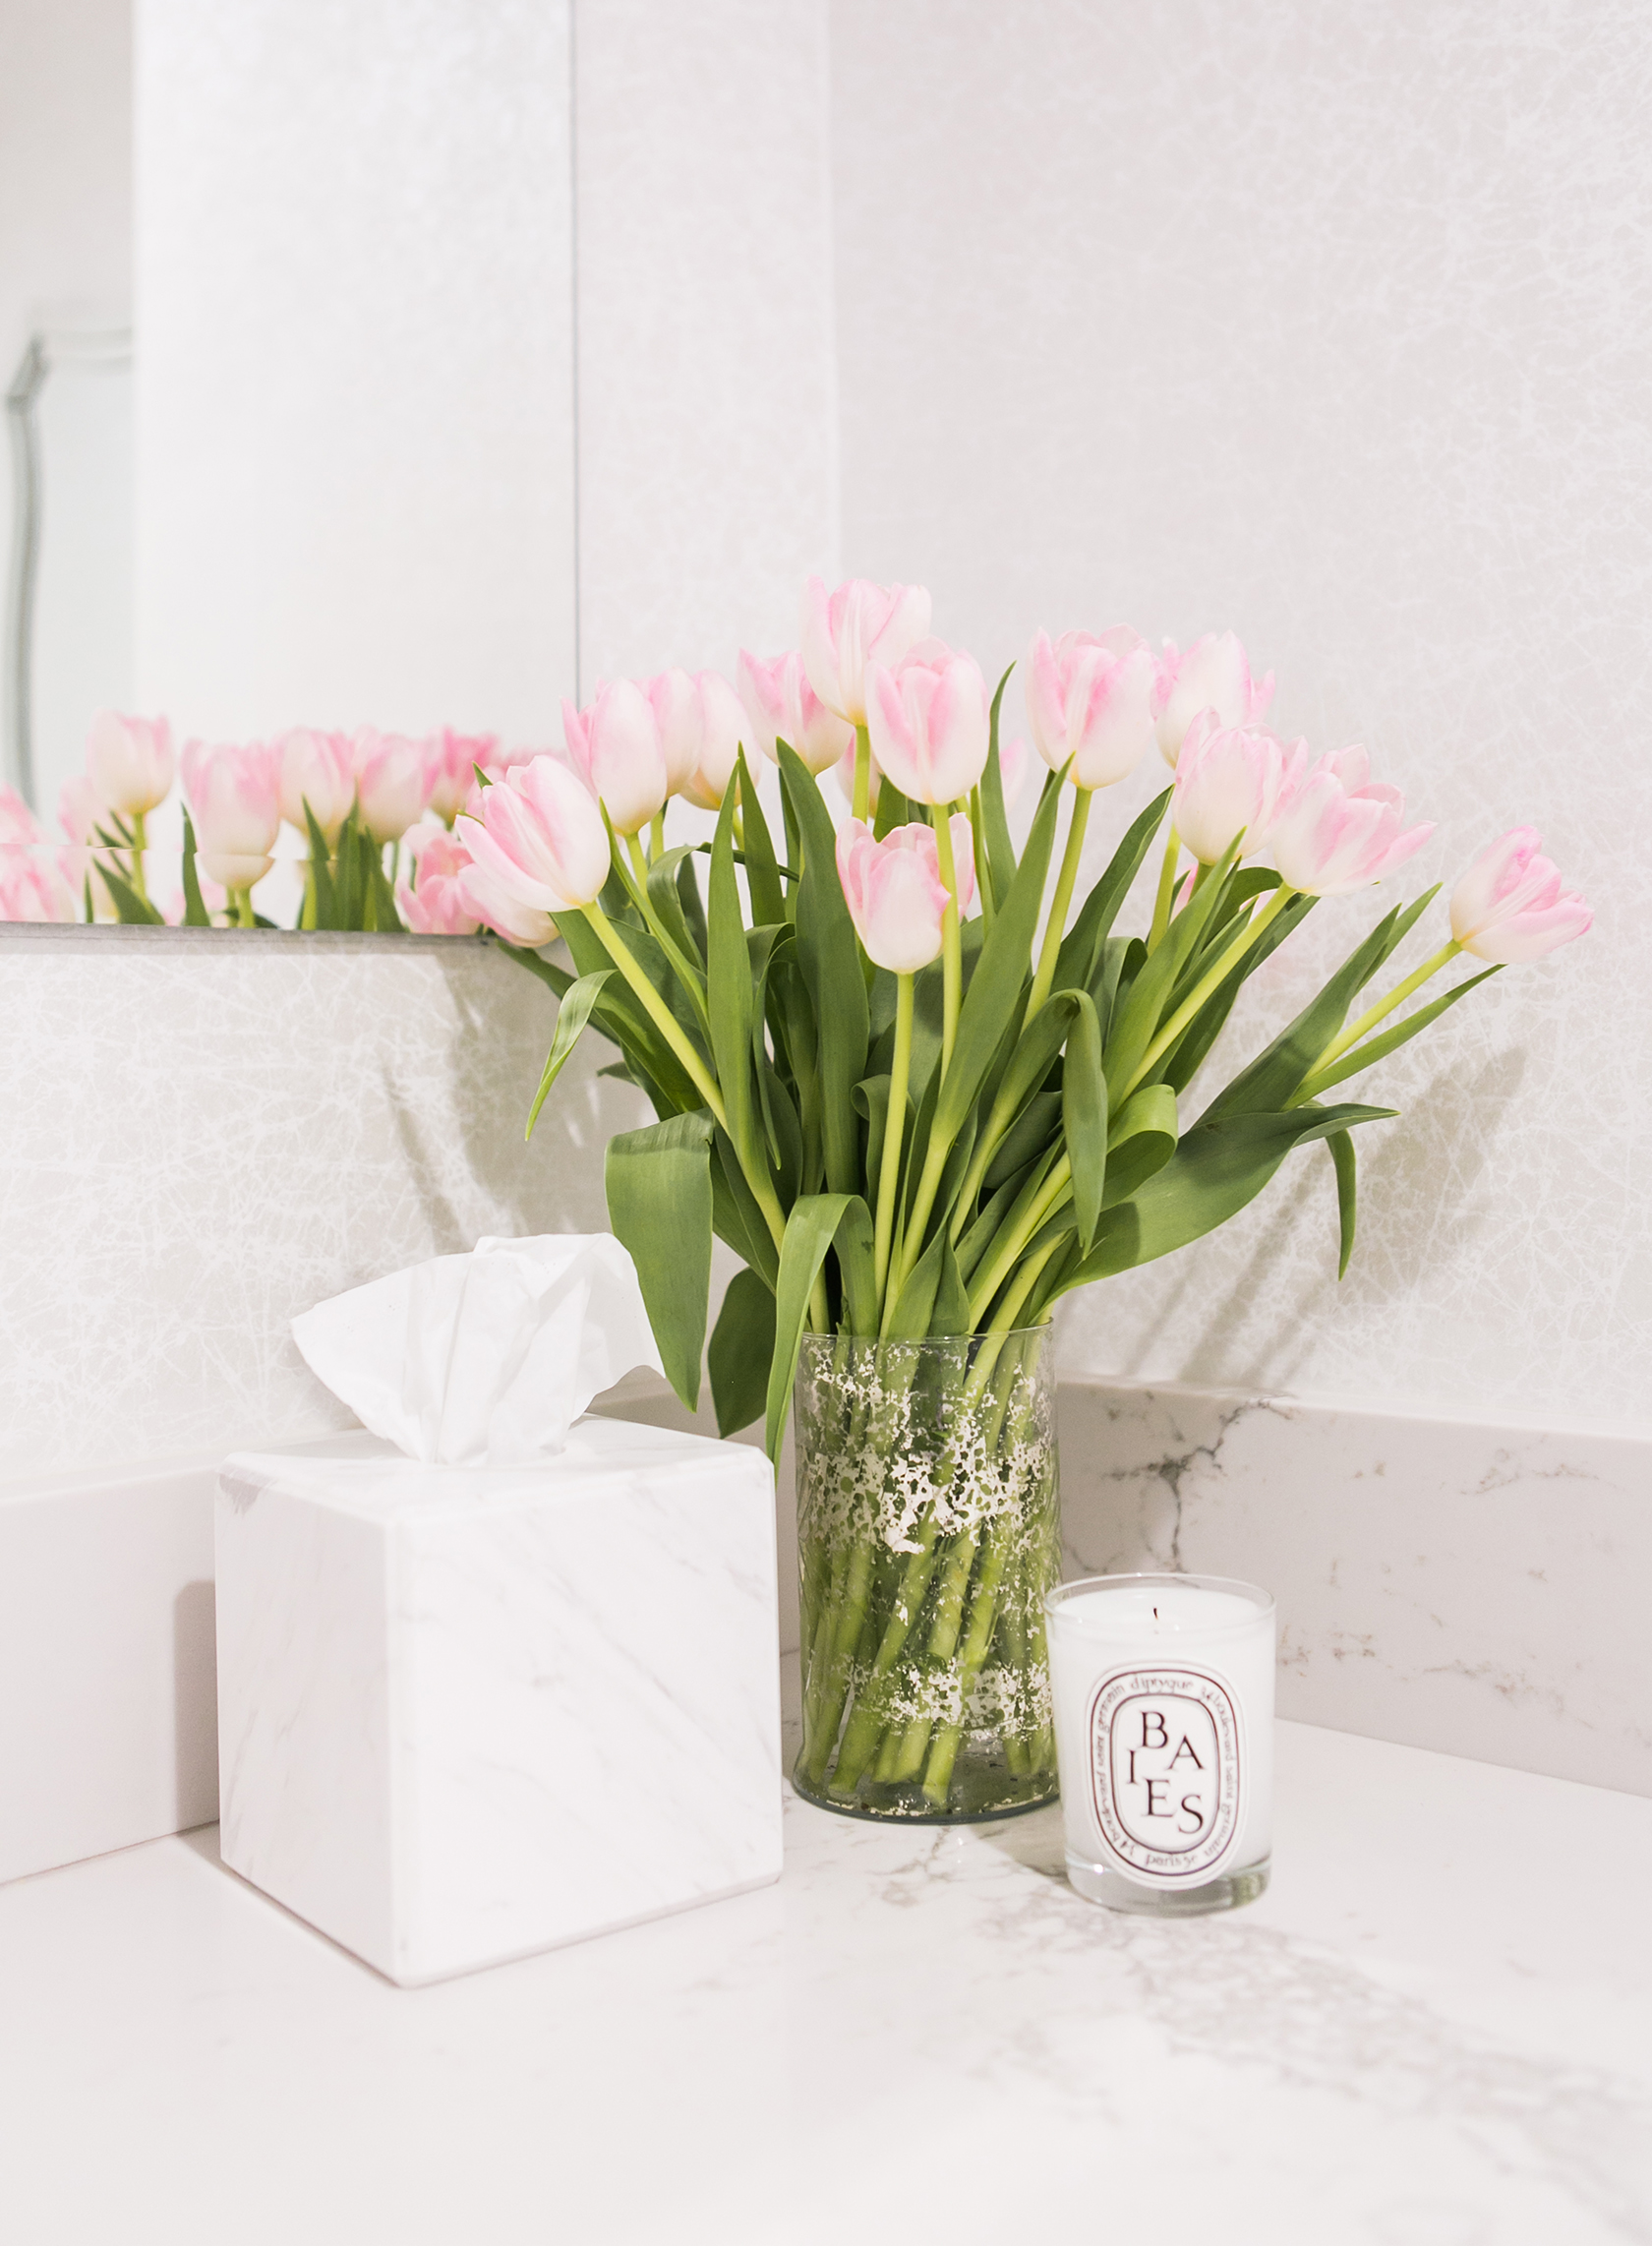 Sydne Style shares the best floral candles for the bathroom